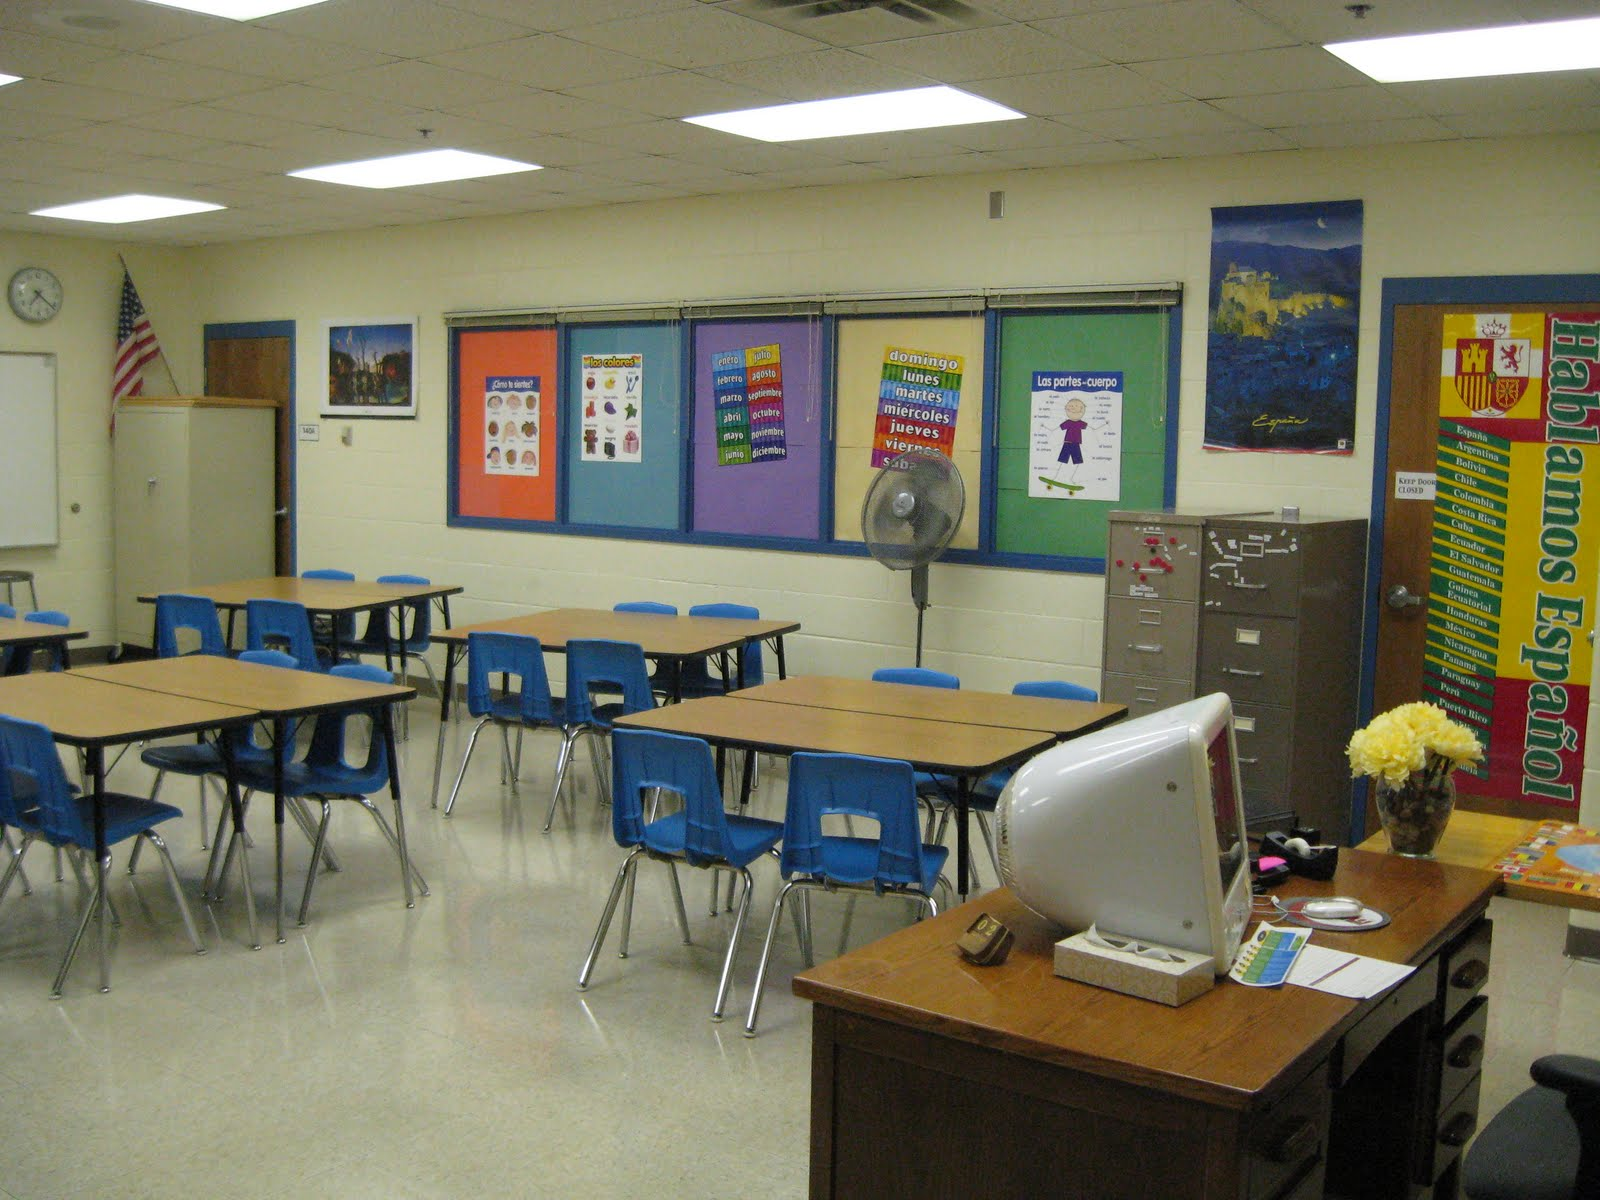 Classroom Decoration Ideas On : Project decoration classroom decorations